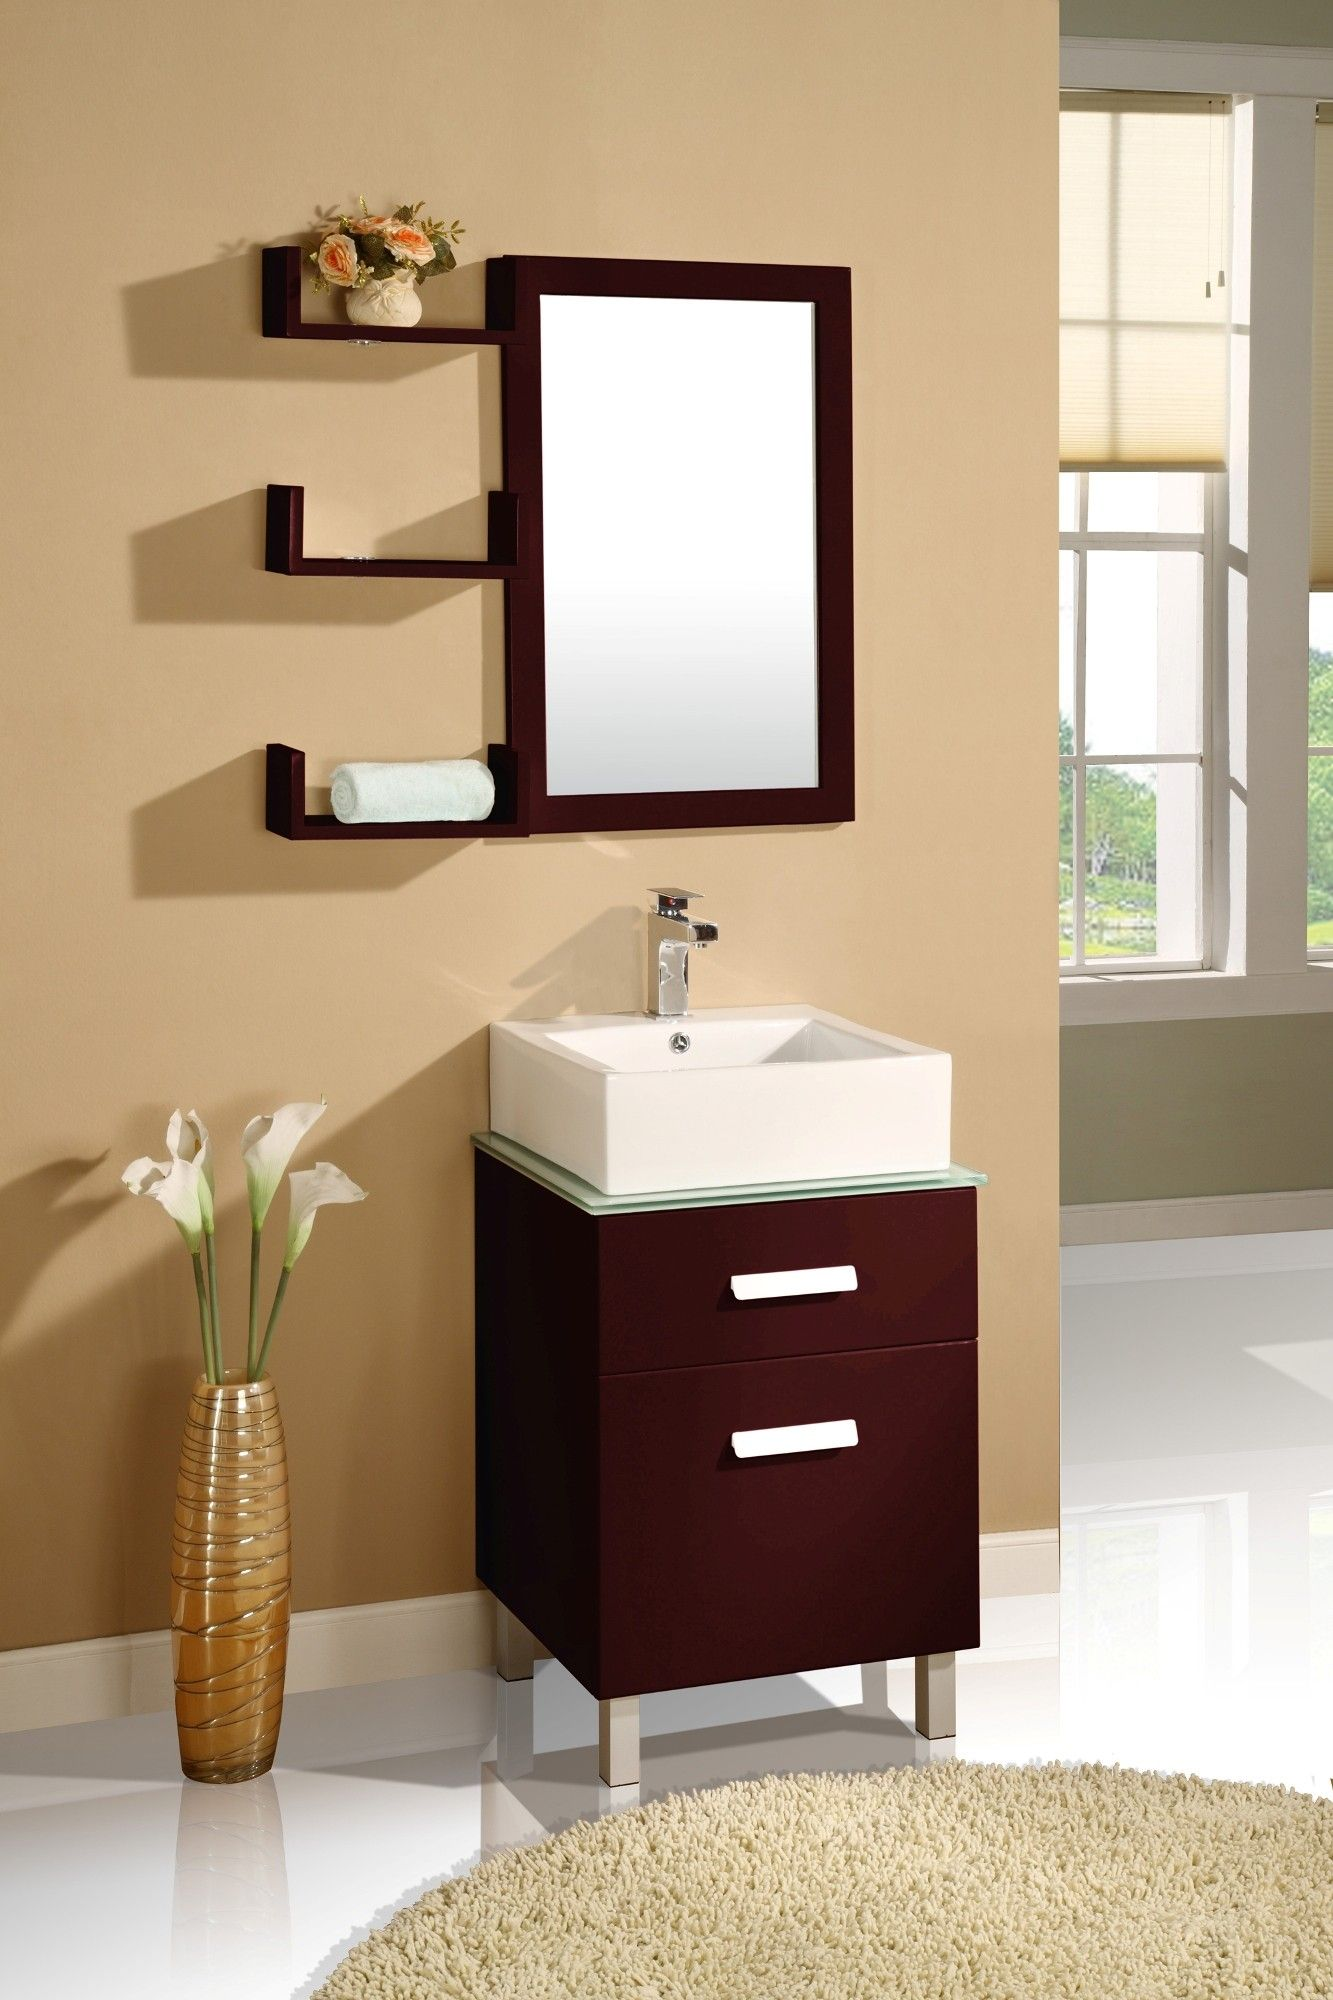 Aqua Decor Cabritzo 20 Inch Modern Bathroom Vanity Set W Matching Framed Mirror Shelf